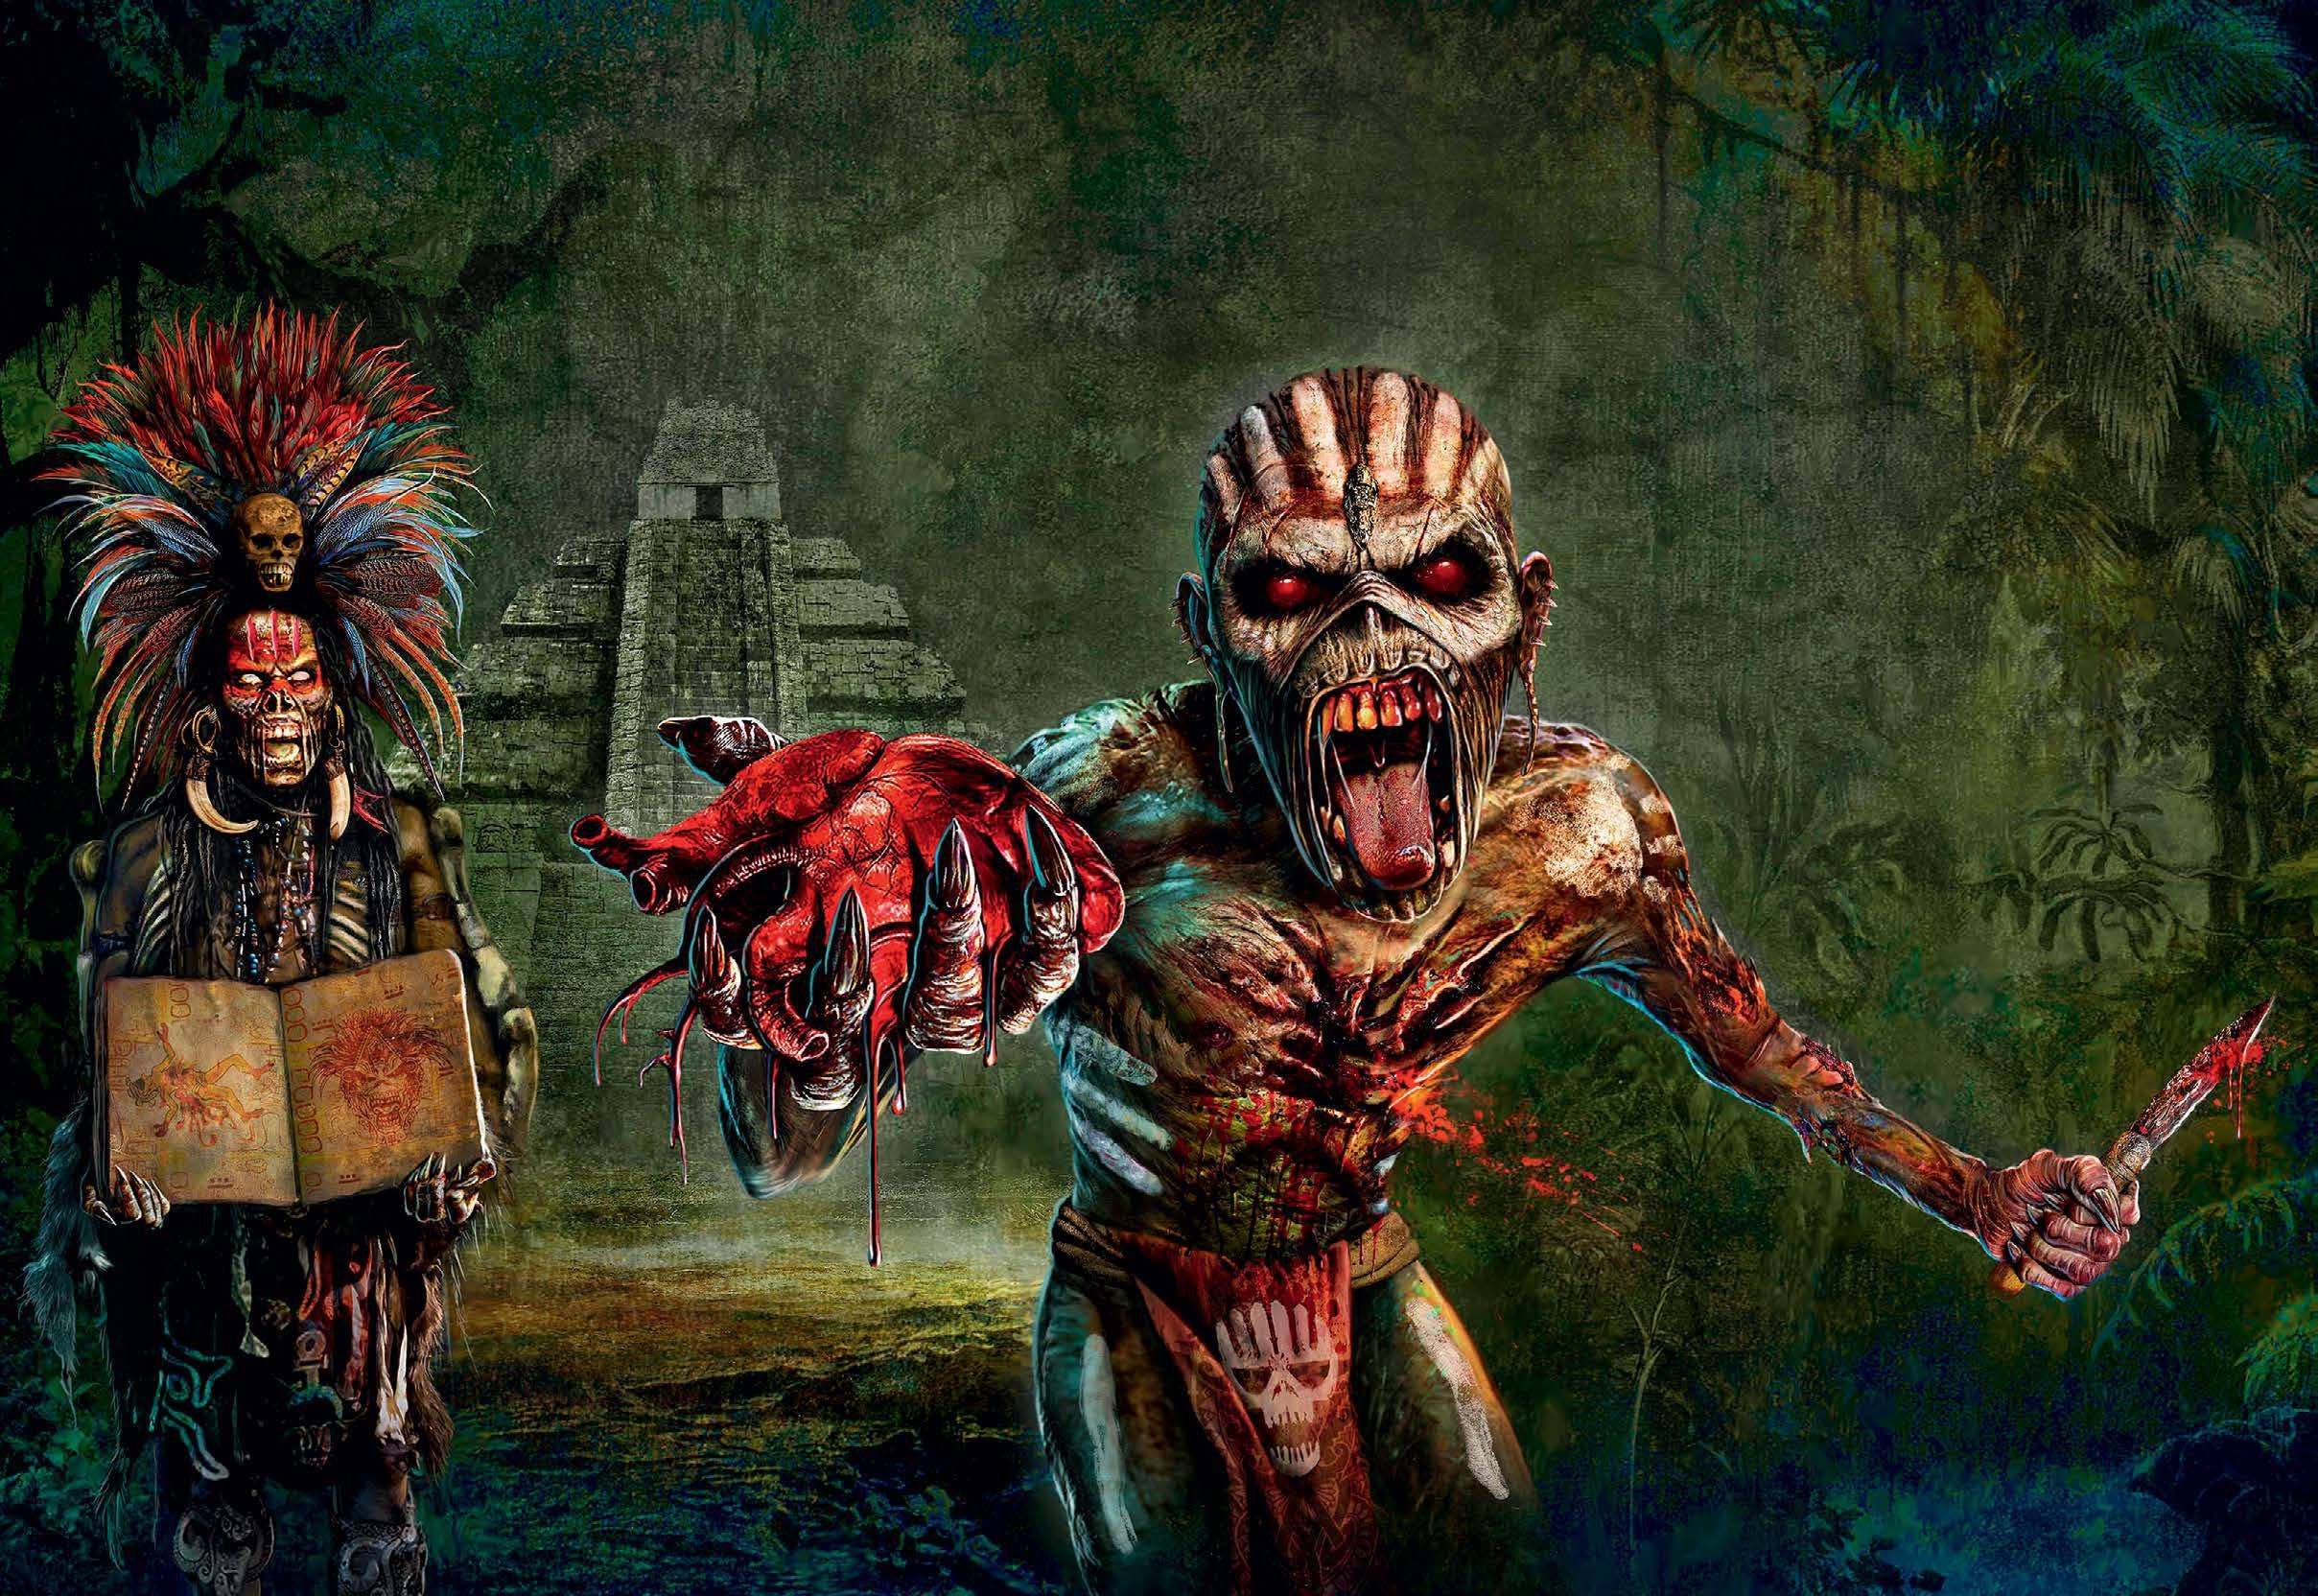 Two Iron Maiden S Extracted From The Digital Itunes Booklet Hd